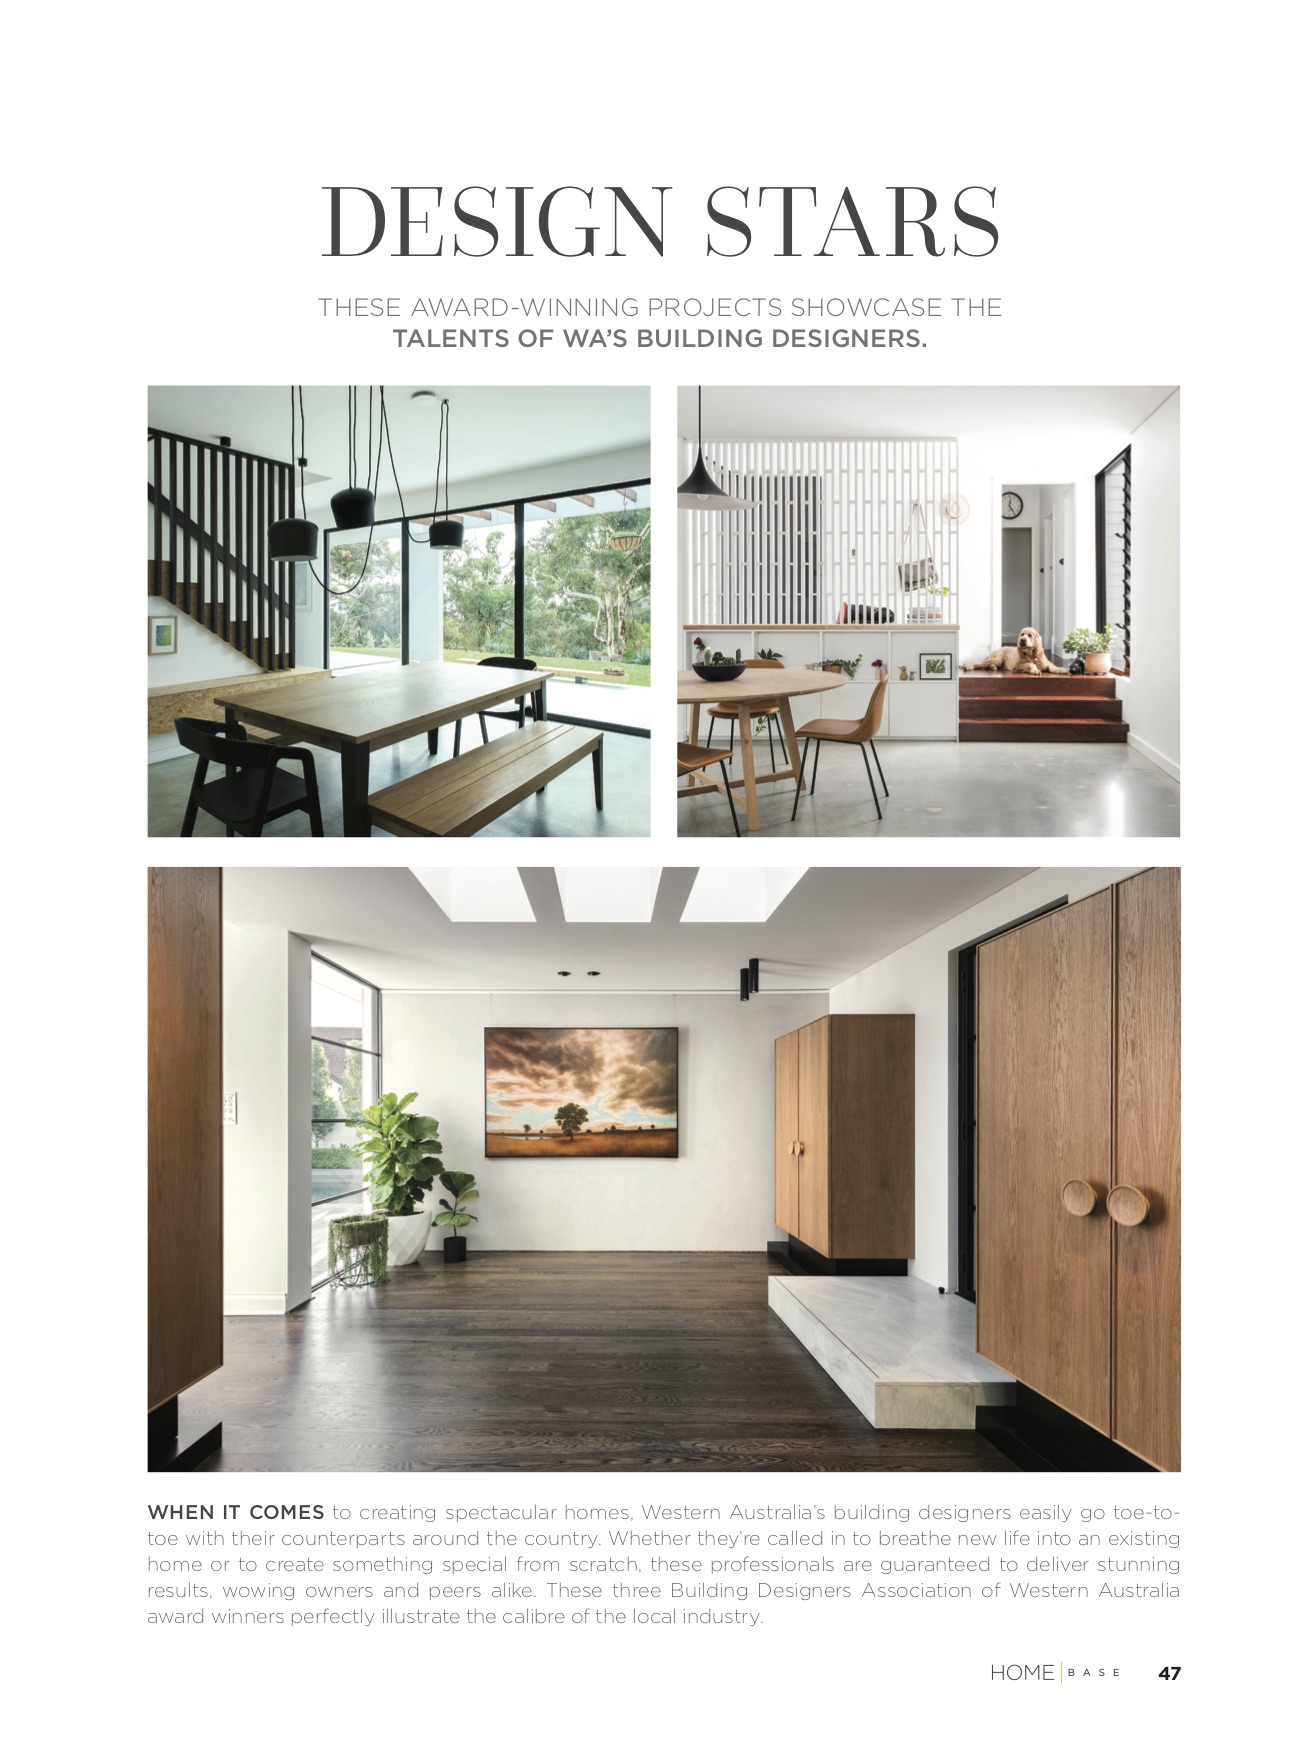 5c3c10660817335c2d653e5b_05 Design Stars Homes pp46-61 (dragged).jpg